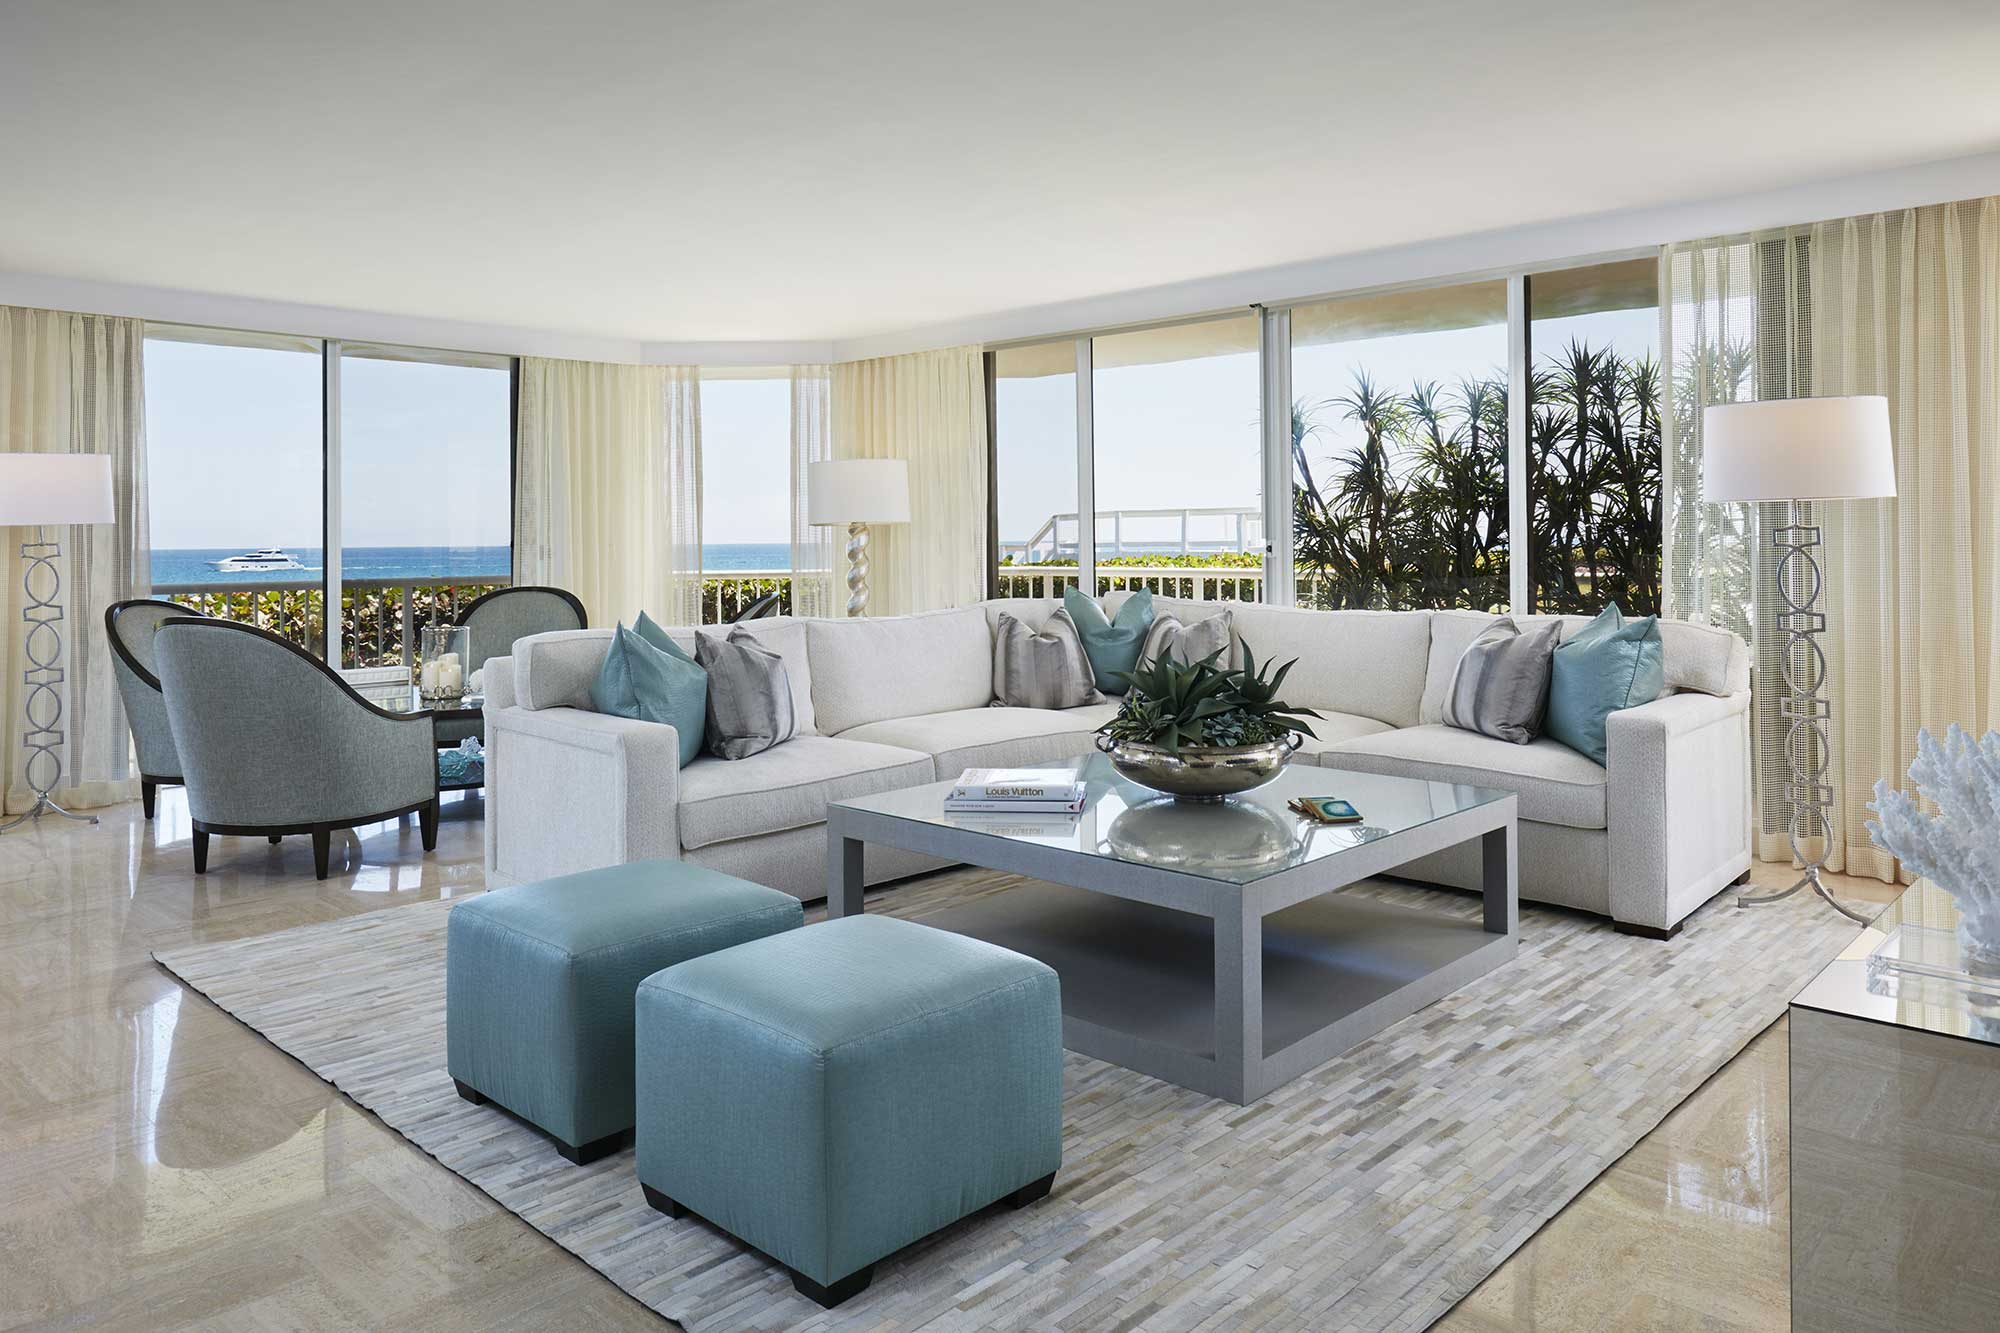 New project palm beach oceanfront paradise annie santulli designs luxury palm beach Palm beach interior designers